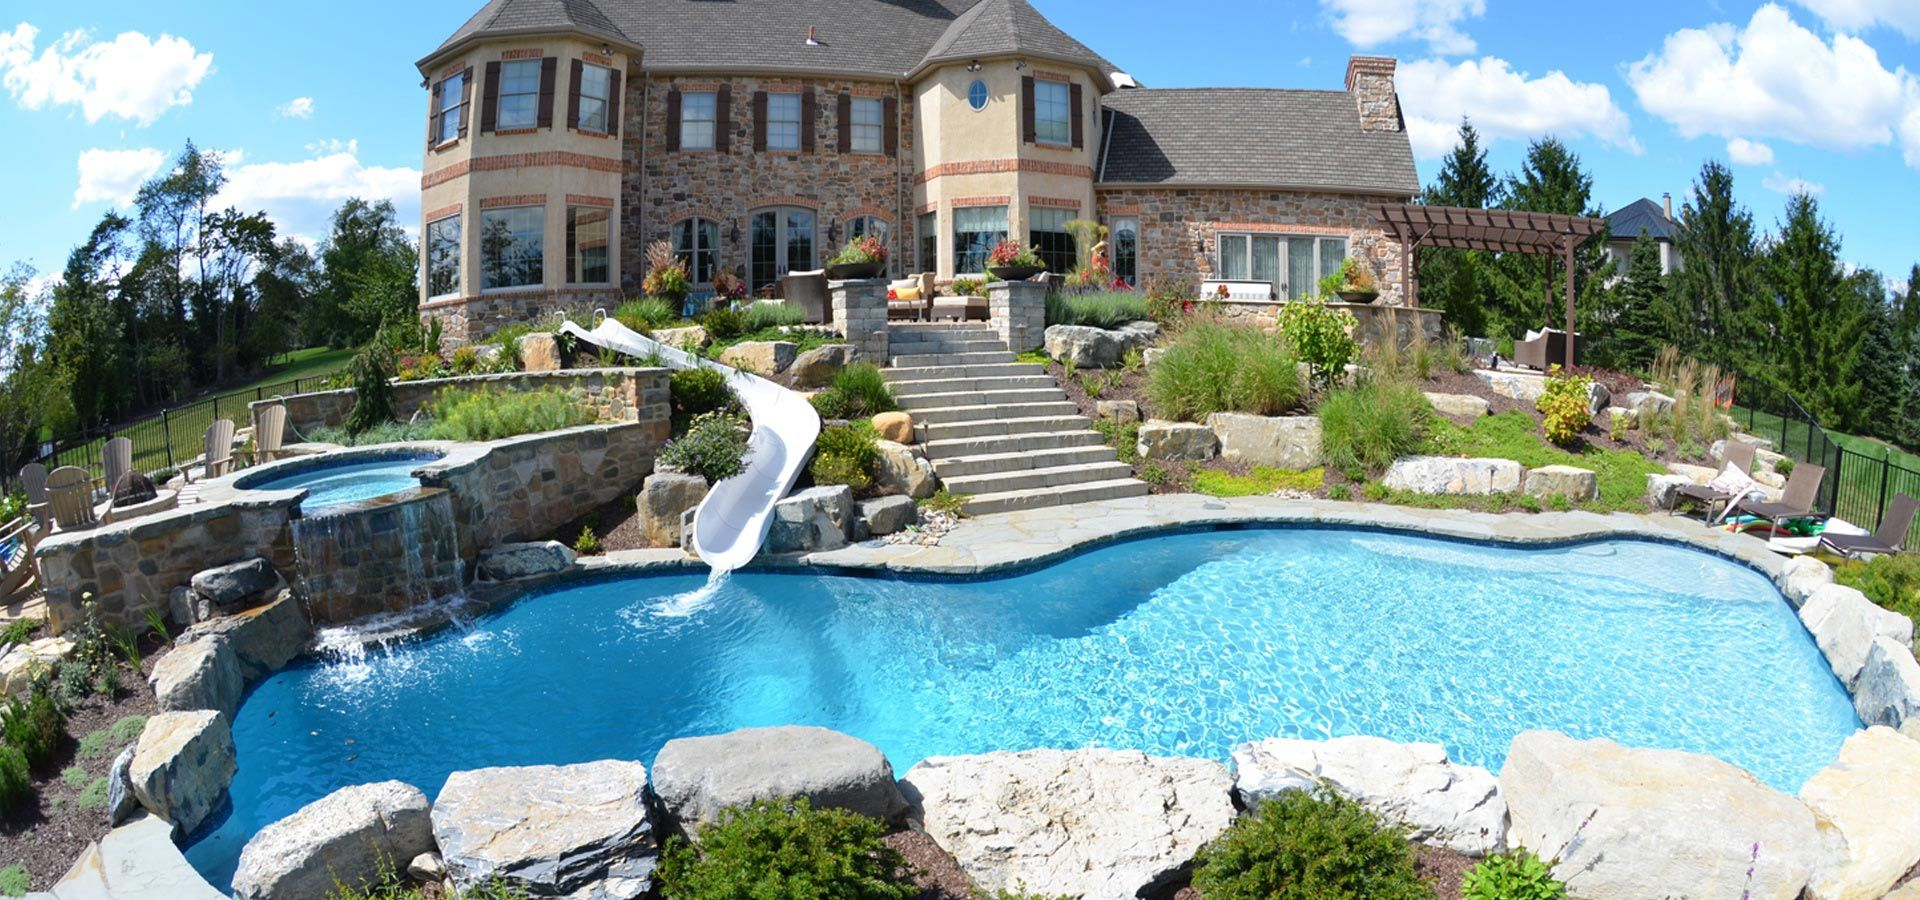 Custom Pool With Waterslide Spa Diamond Brite Finish